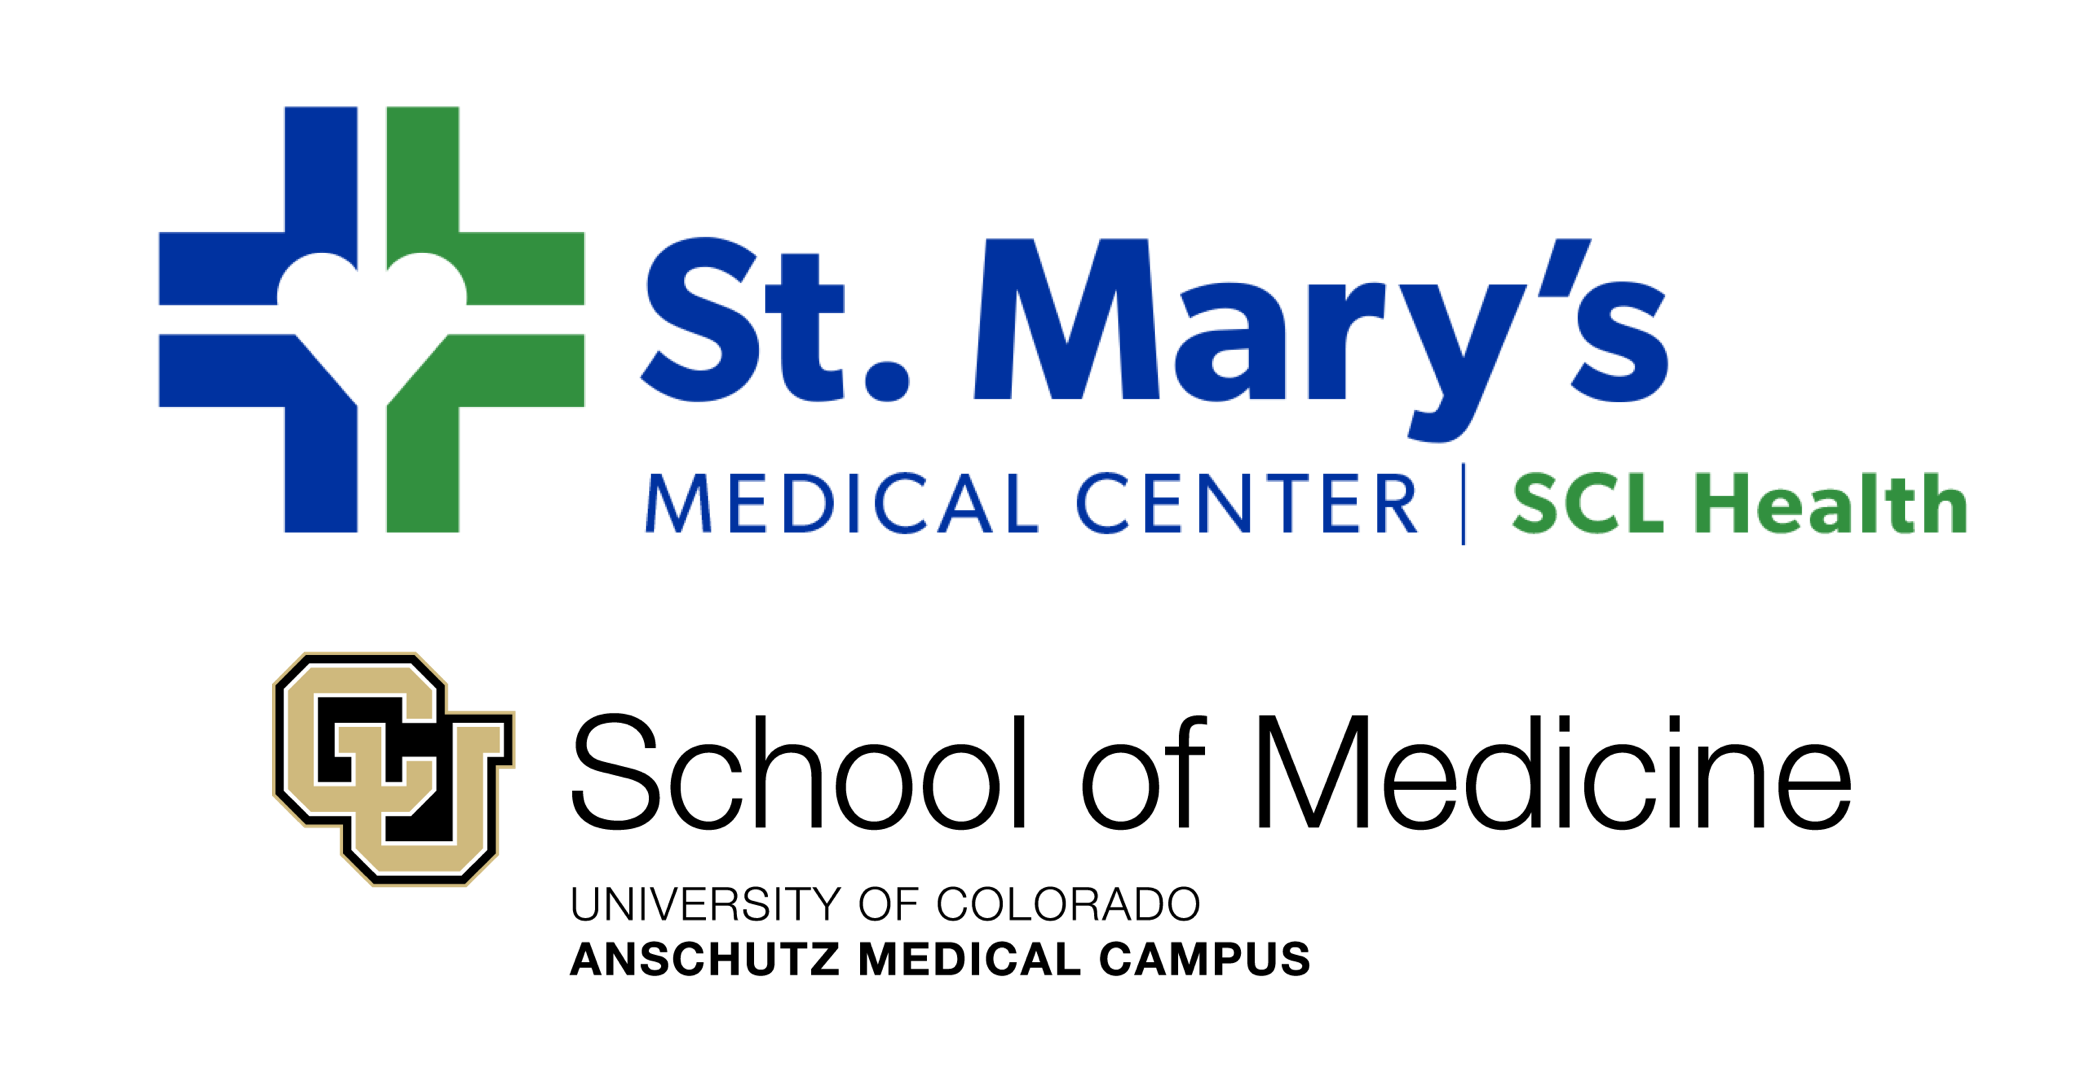 St. Mary's Medical Center Family Medicine Residency - Family Medicine Education Fellowship for Family Therapists